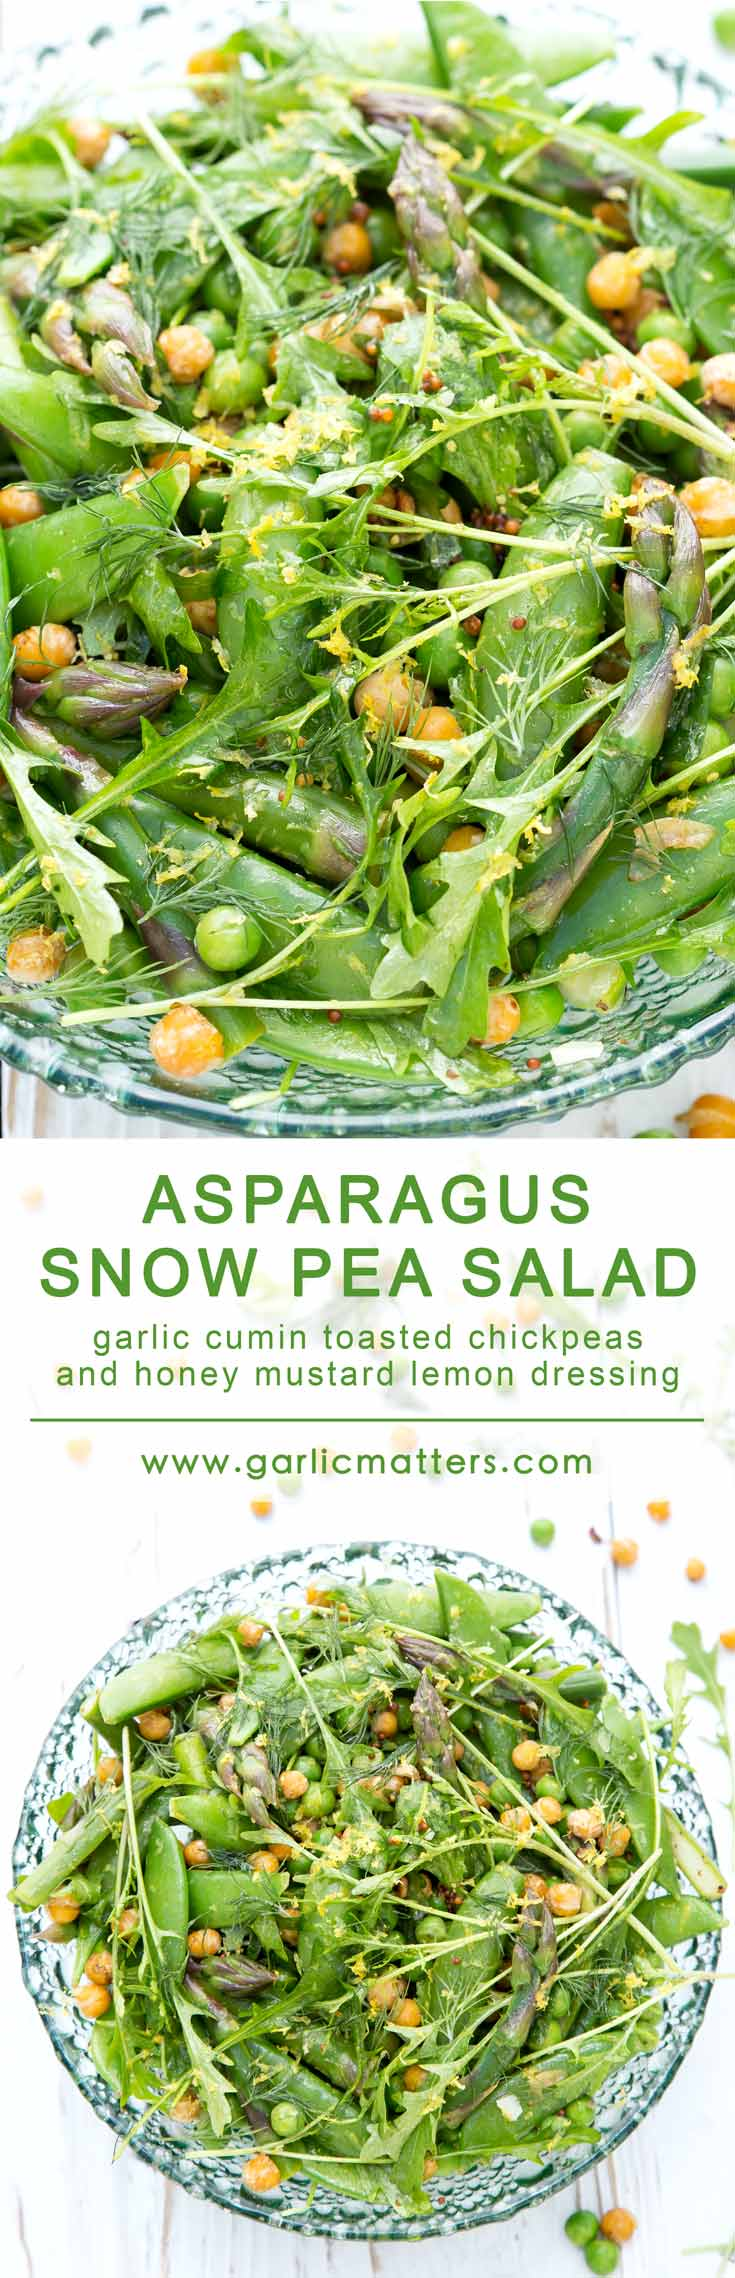 This delicious, vegan Asparagus and Snow Pea Salad comes with garlic cumin toasted chickpeas and honey mustard lemon dressing. It is fresh, green, scrumptiously crunchy and super healthy. Come on in my friends and see how to put this vitamin and protein powerhouse salad together in only 20 min.